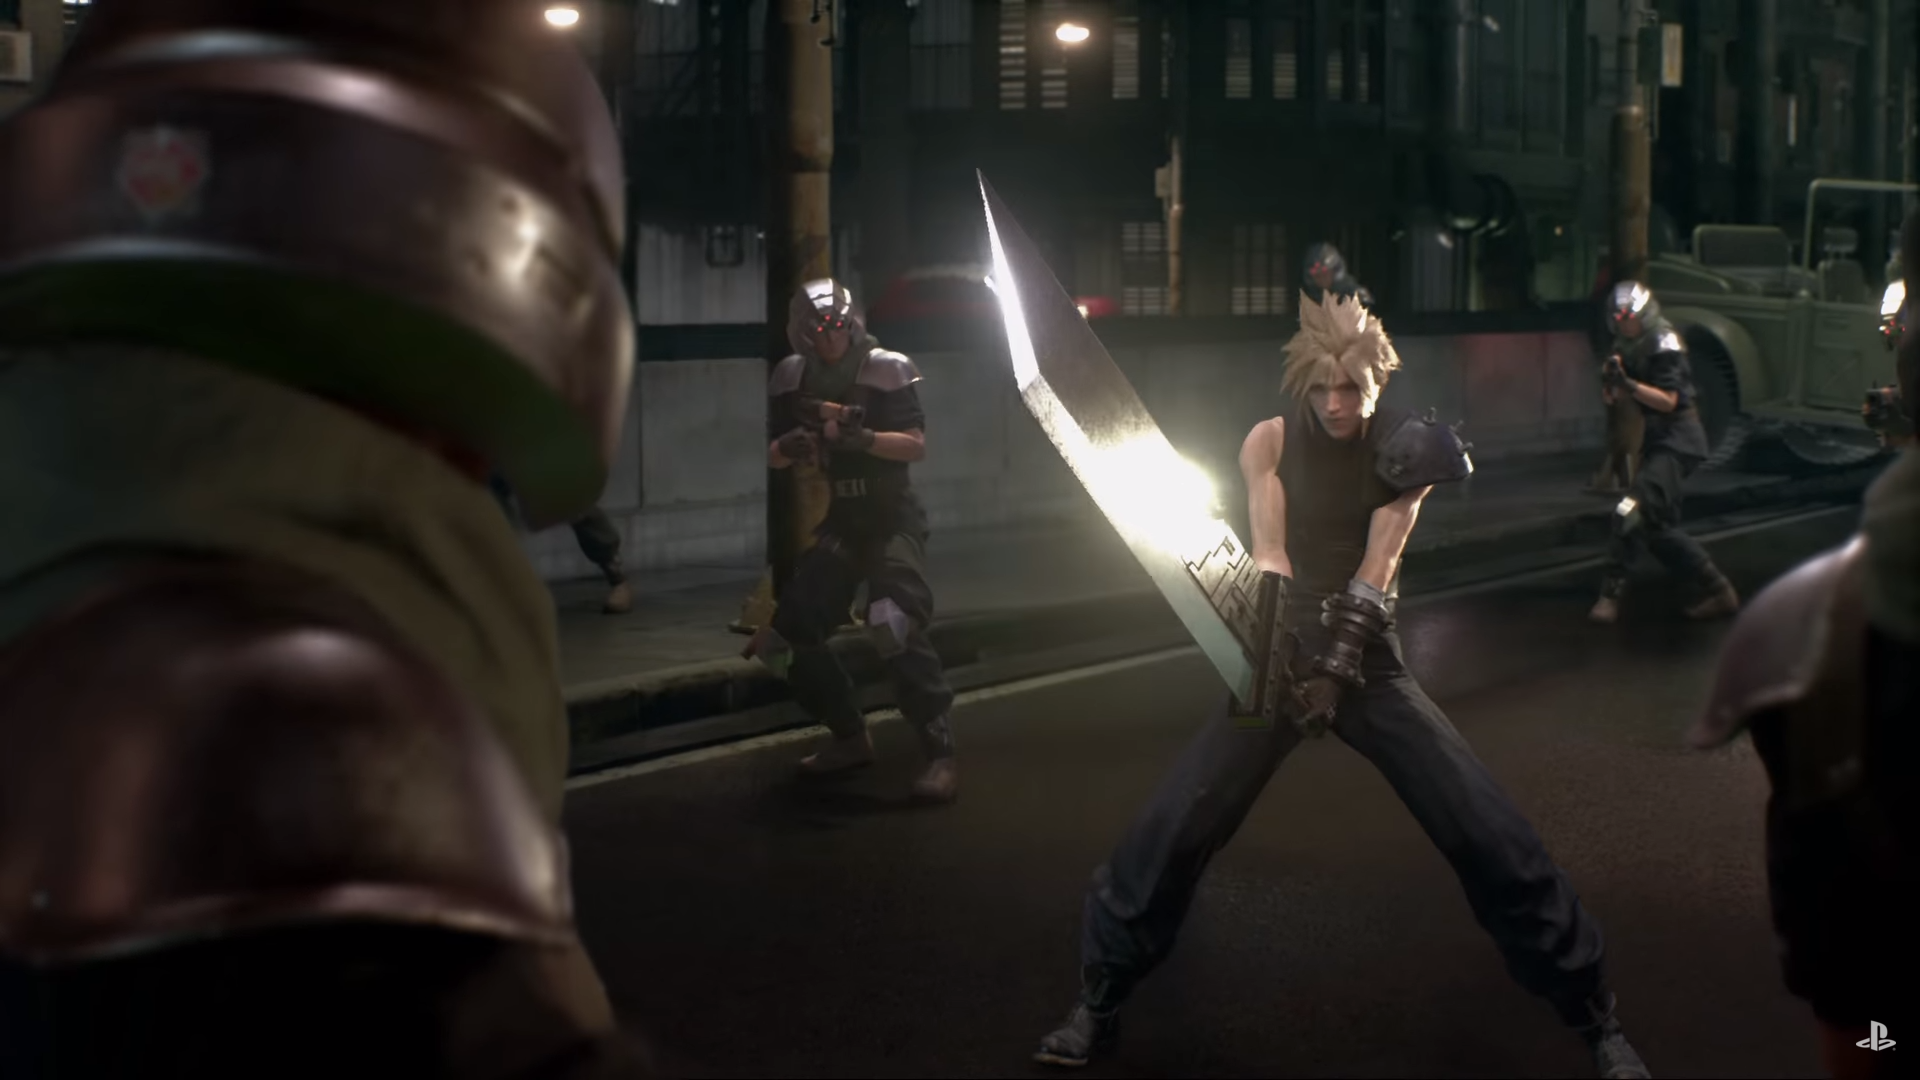 I am excited to play <em>FFVII Remake</em> and all that, but come on. This is a ridiculous image no matter how you spin it.